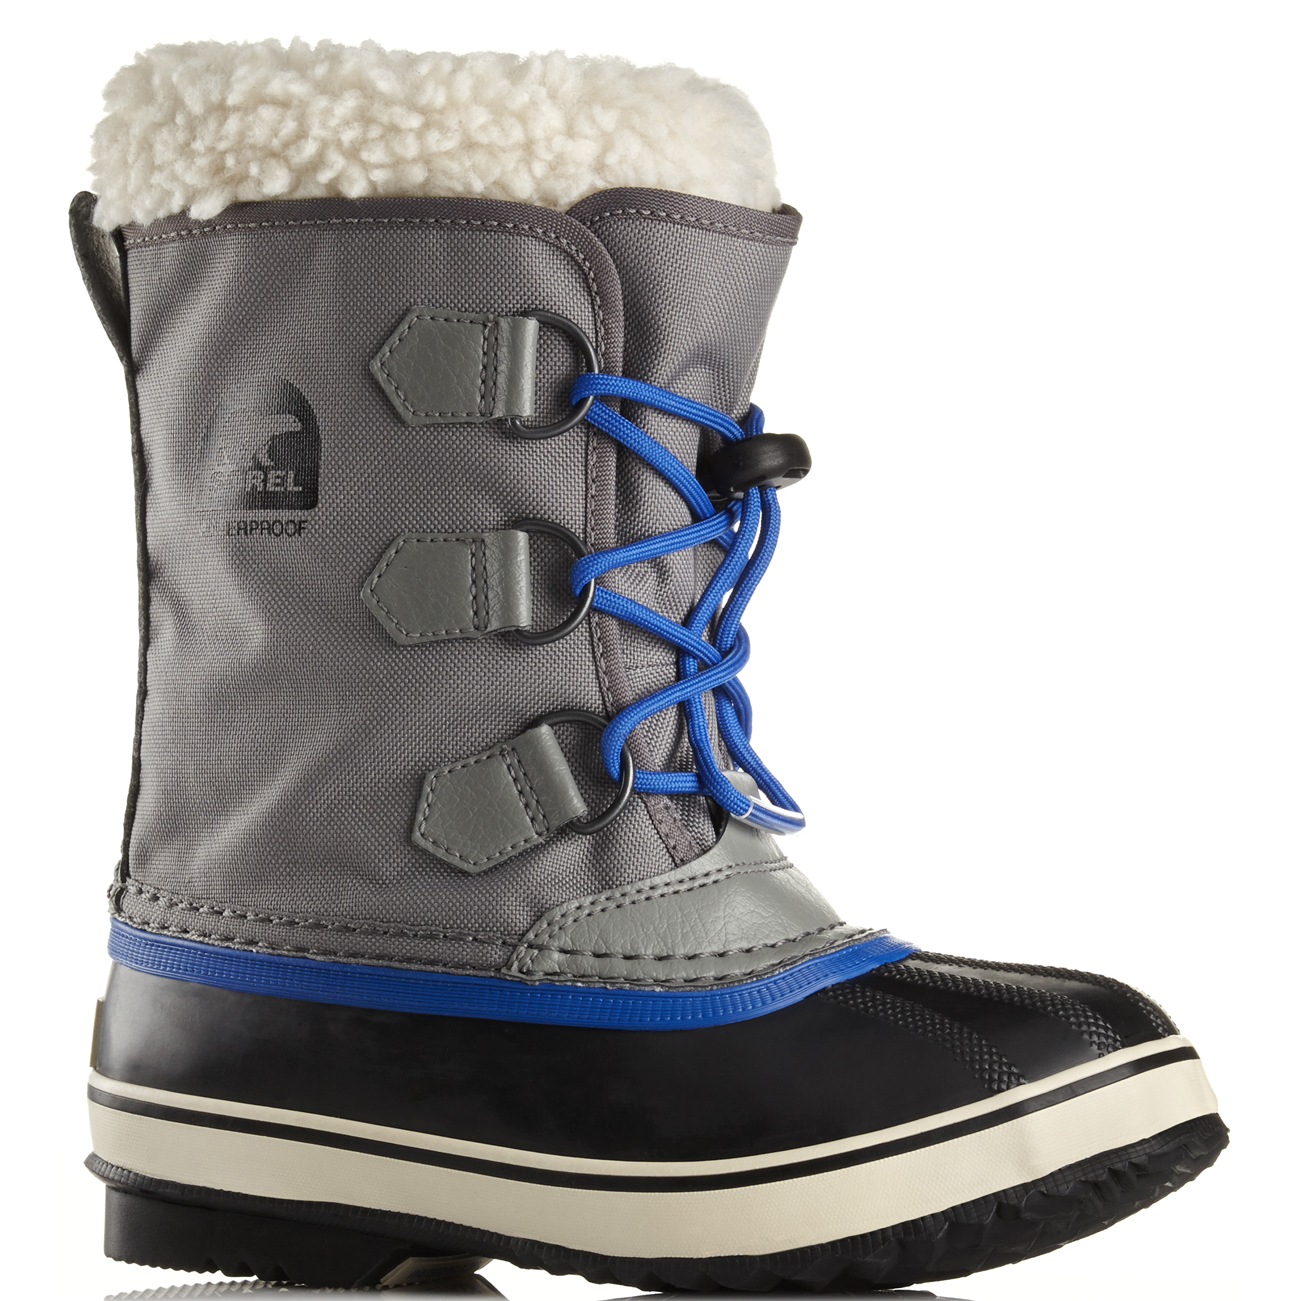 Unisex Kids Sorel Youth Pac Nylon Winter Waterproof ...